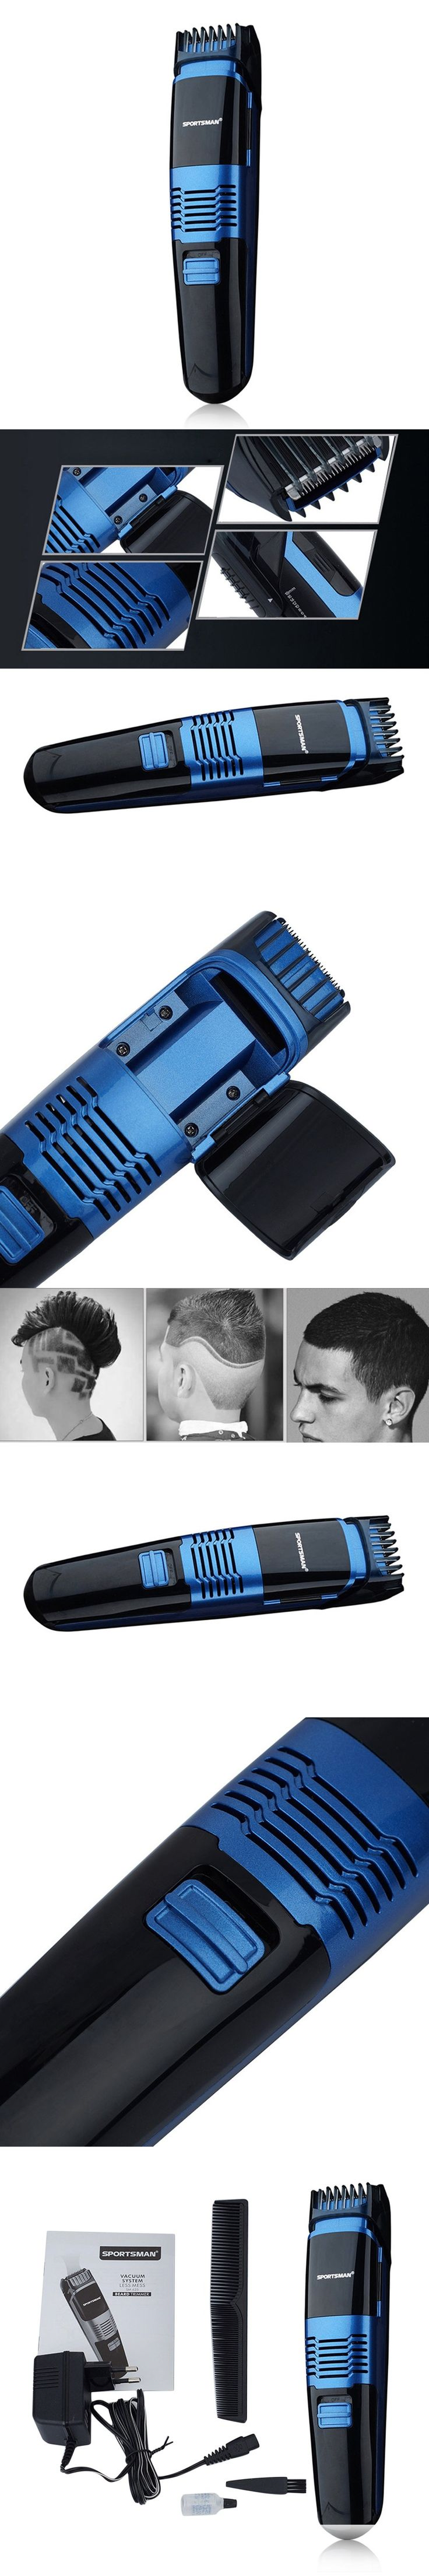 1 set Multifunctional Electric Hair Trimmer Rechargeable Hair Clipper Haircut Beard Trimmer Razor for Adult Men LED Display